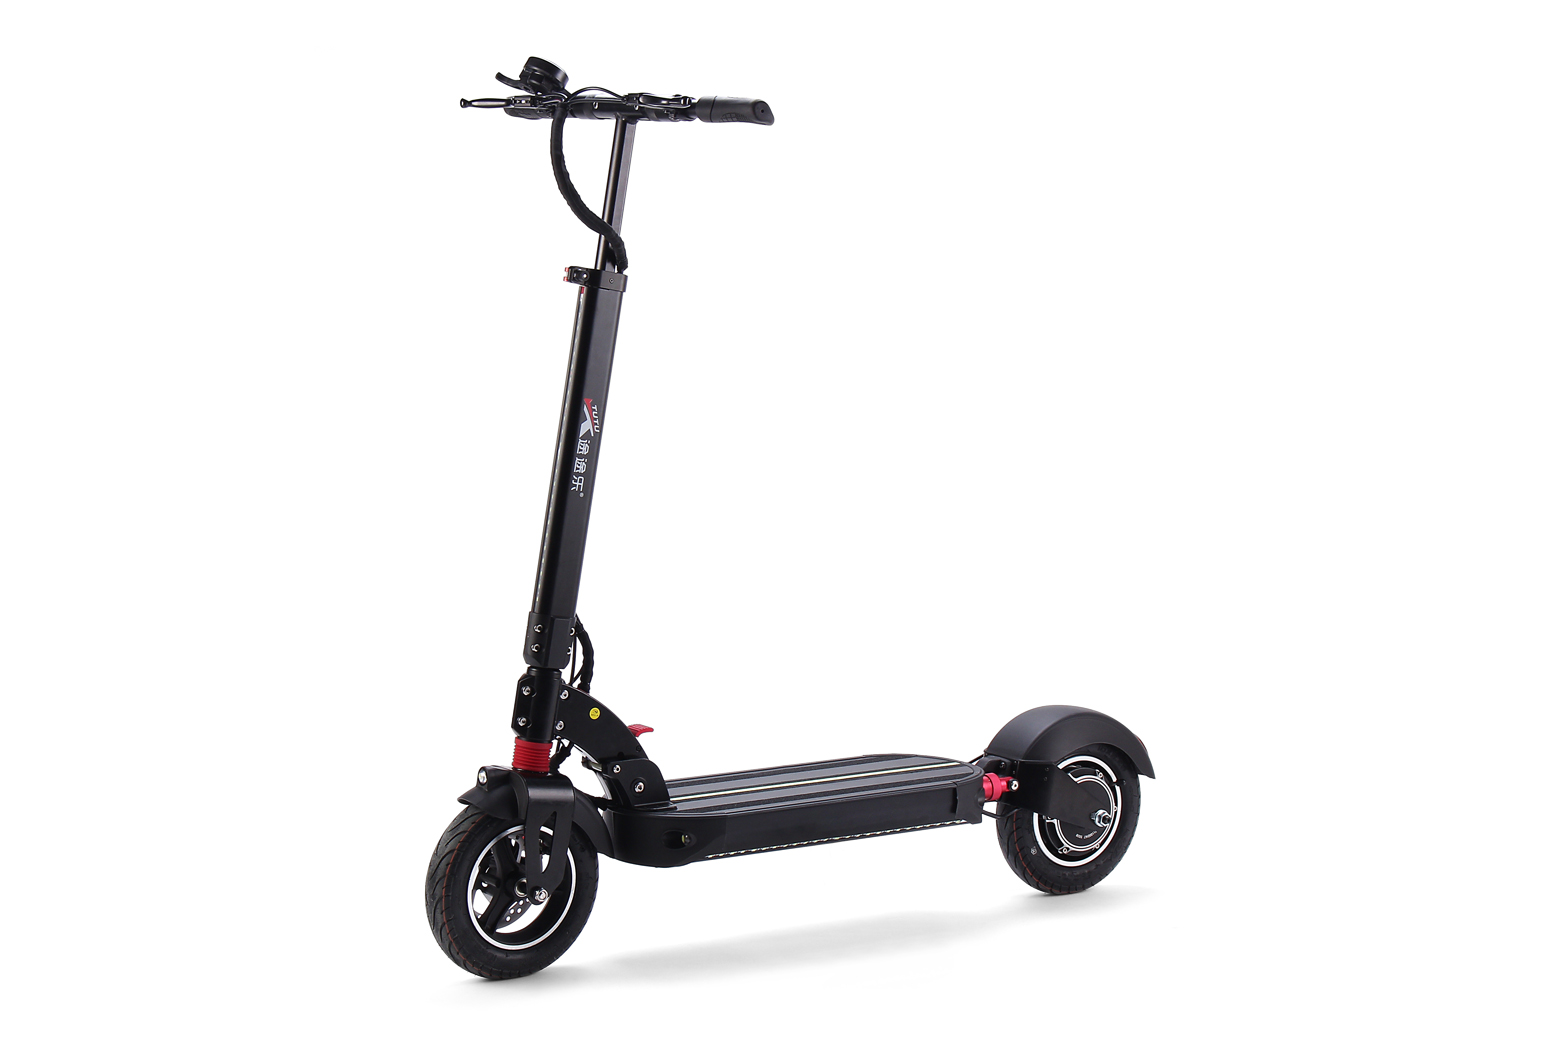 10 inch foldable electric scooter